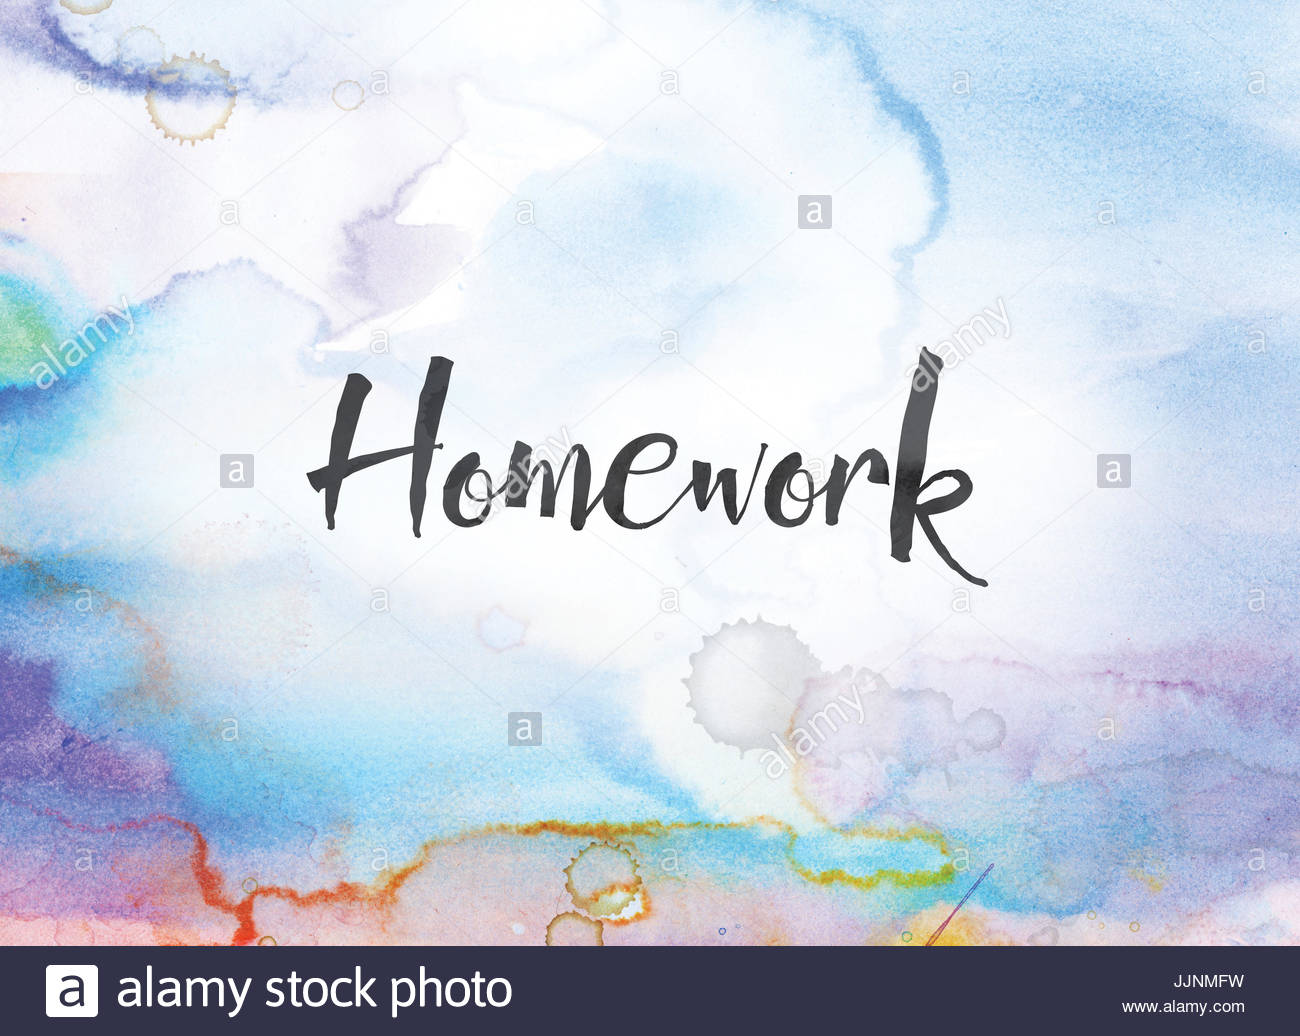 The word Homework concept and theme written in black ink on a 1300x1036